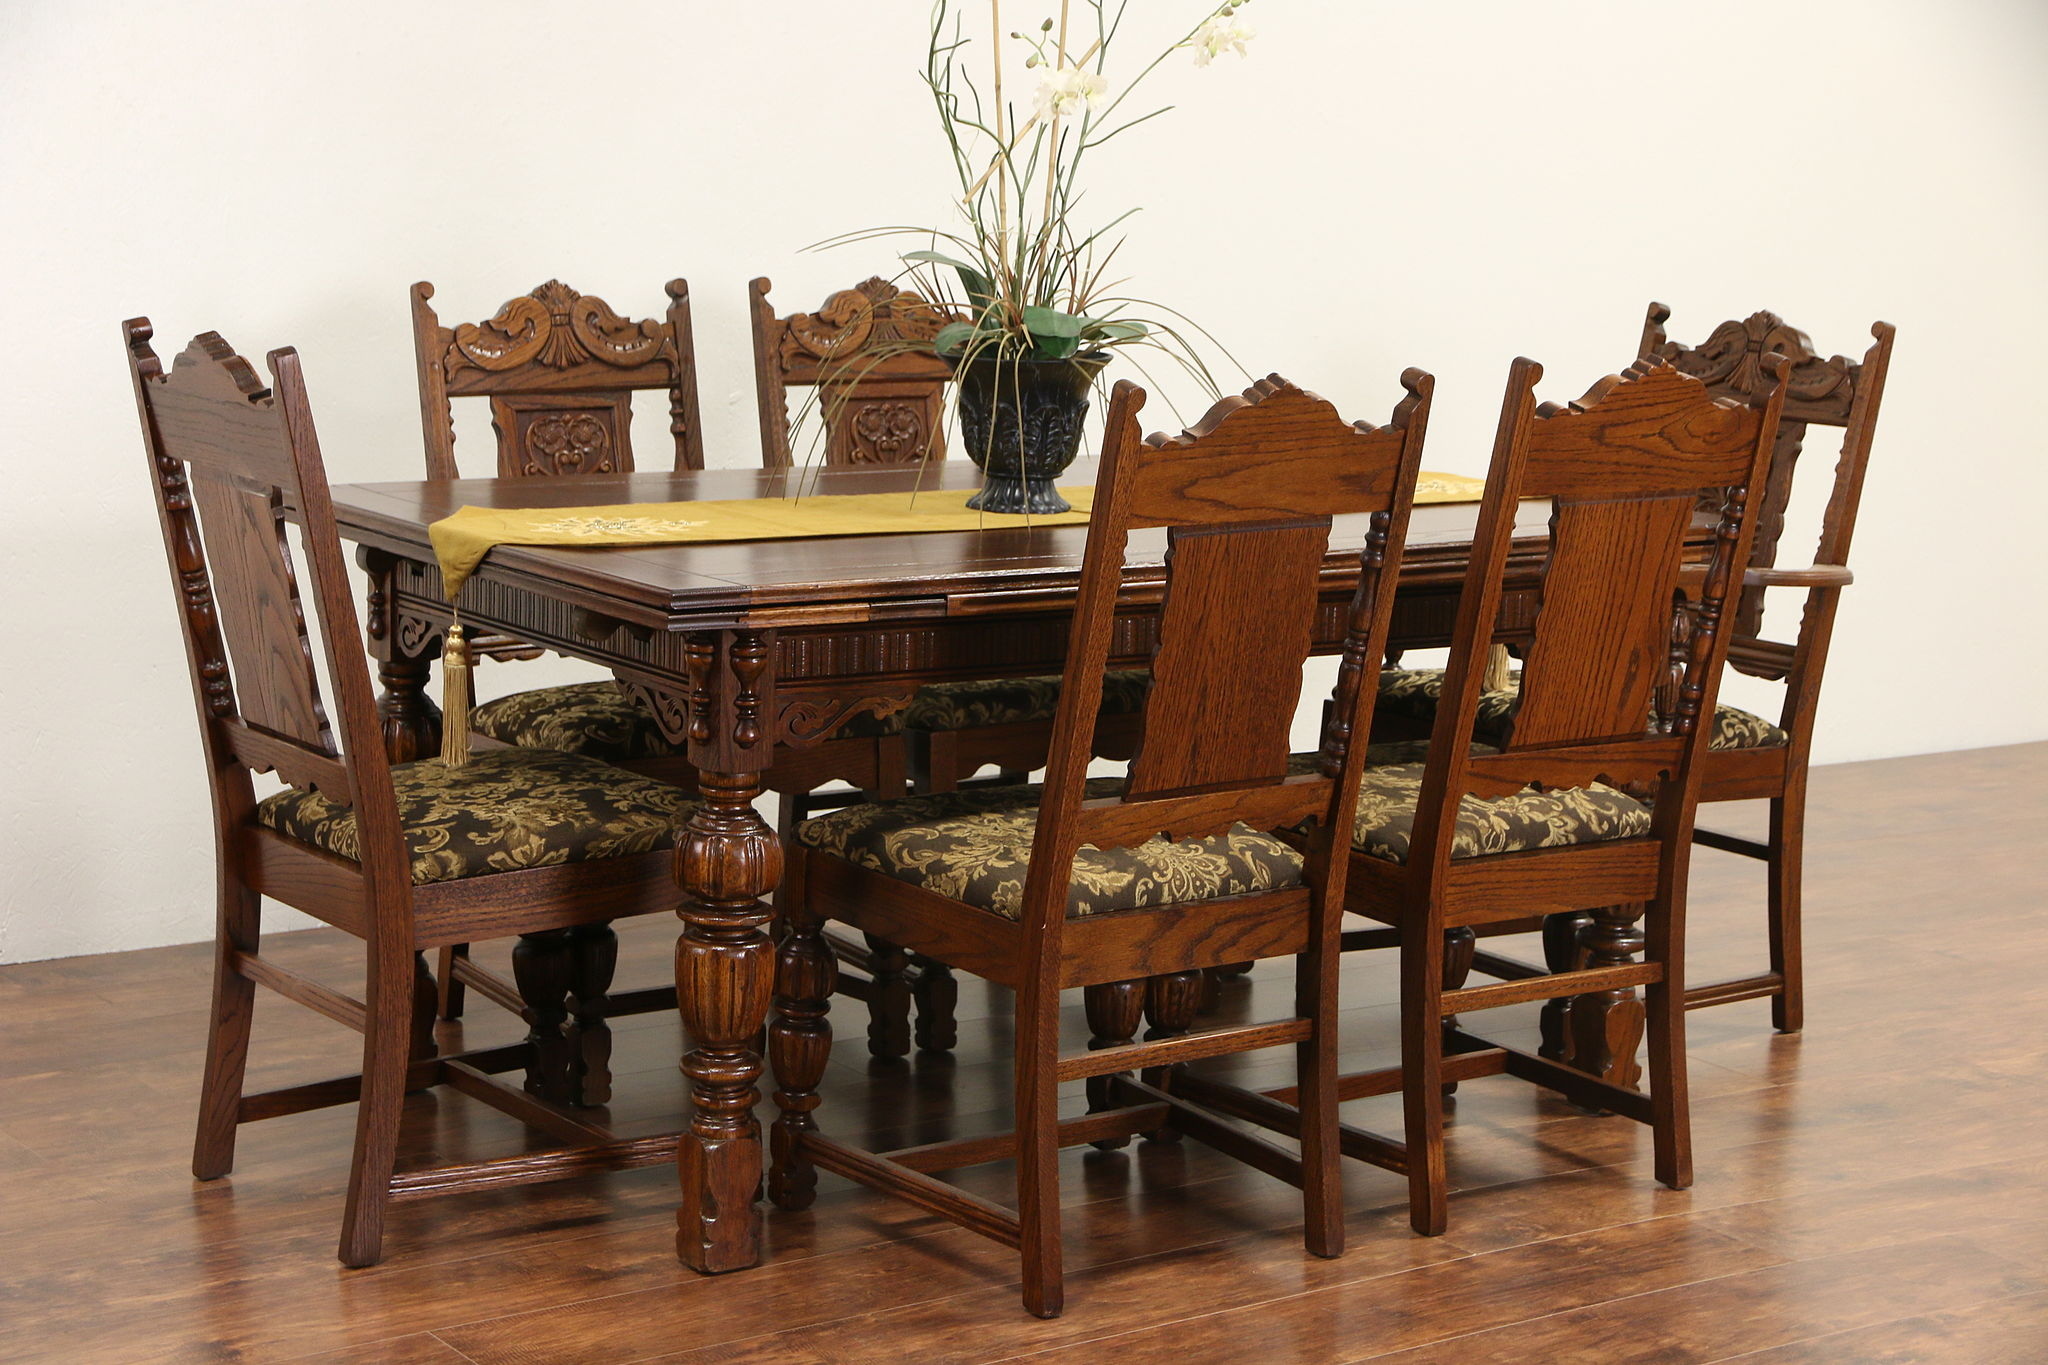 Sold english tudor 1920 antique carved oak dining set for Antique dining room furniture